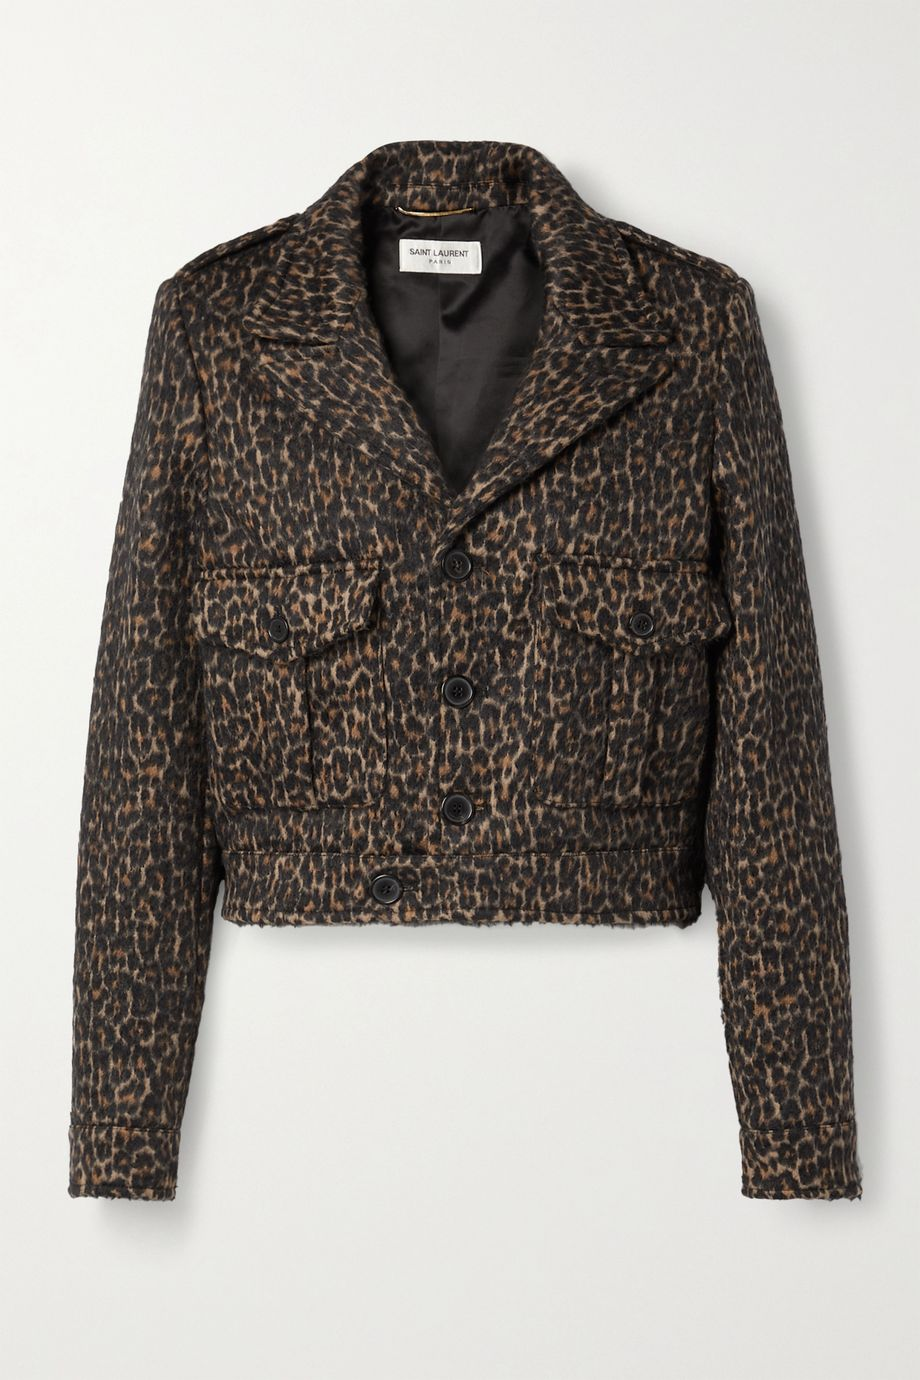 SAINT LAURENT Cropped leopard-print wool-blend jacket